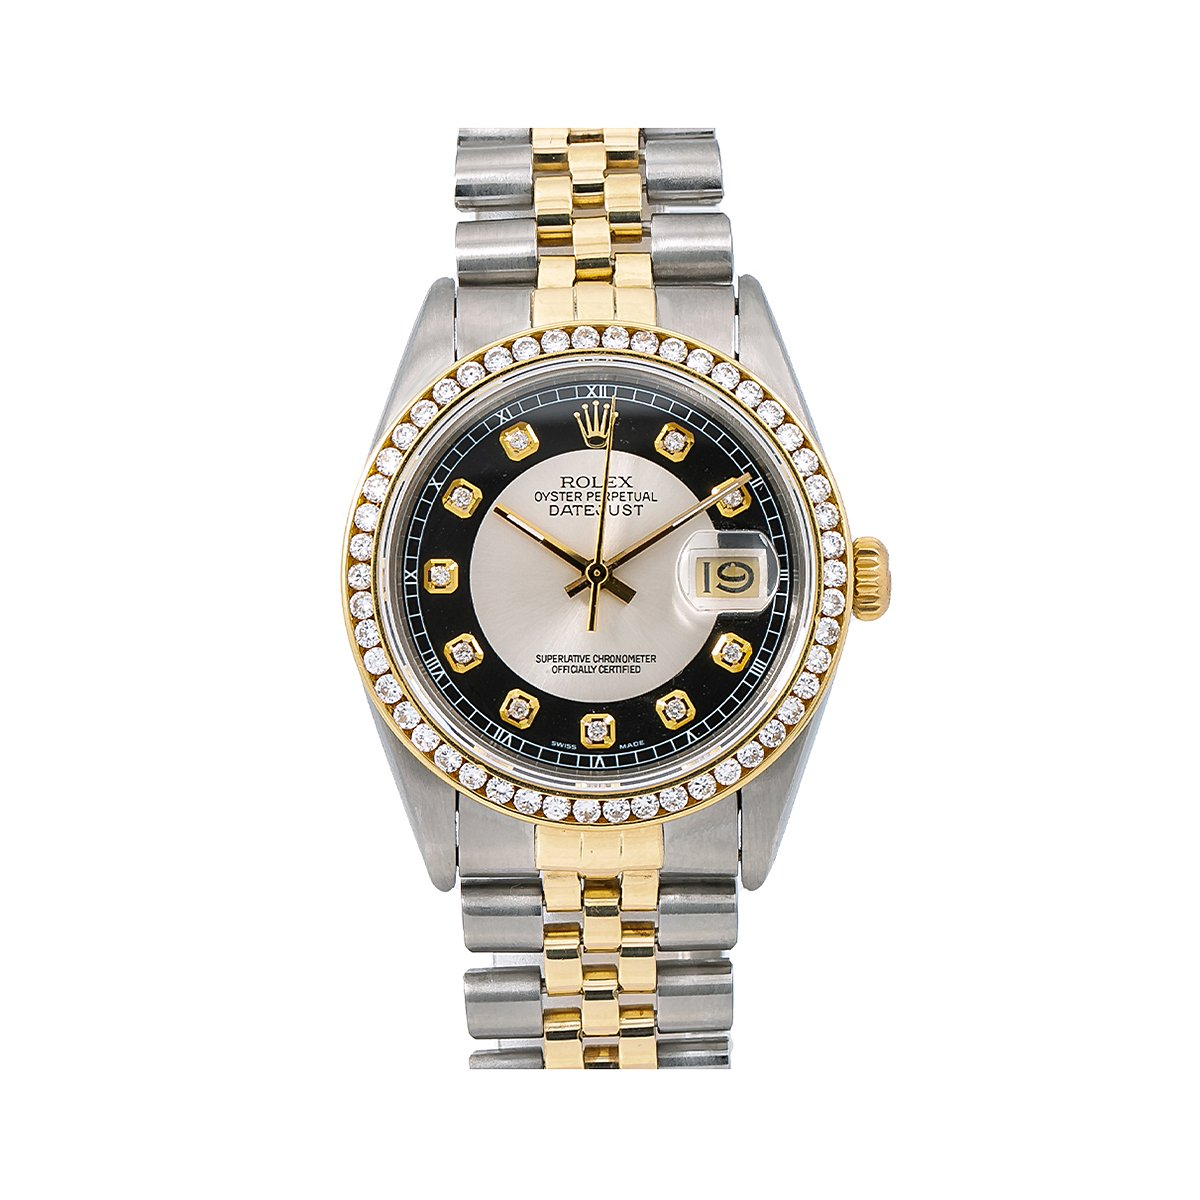 6dc1e5d2ae9 36mm Diamond Rolex DateJust Mens Watch Black 18k Gold Steel Jubilee  Bracelet Main Image